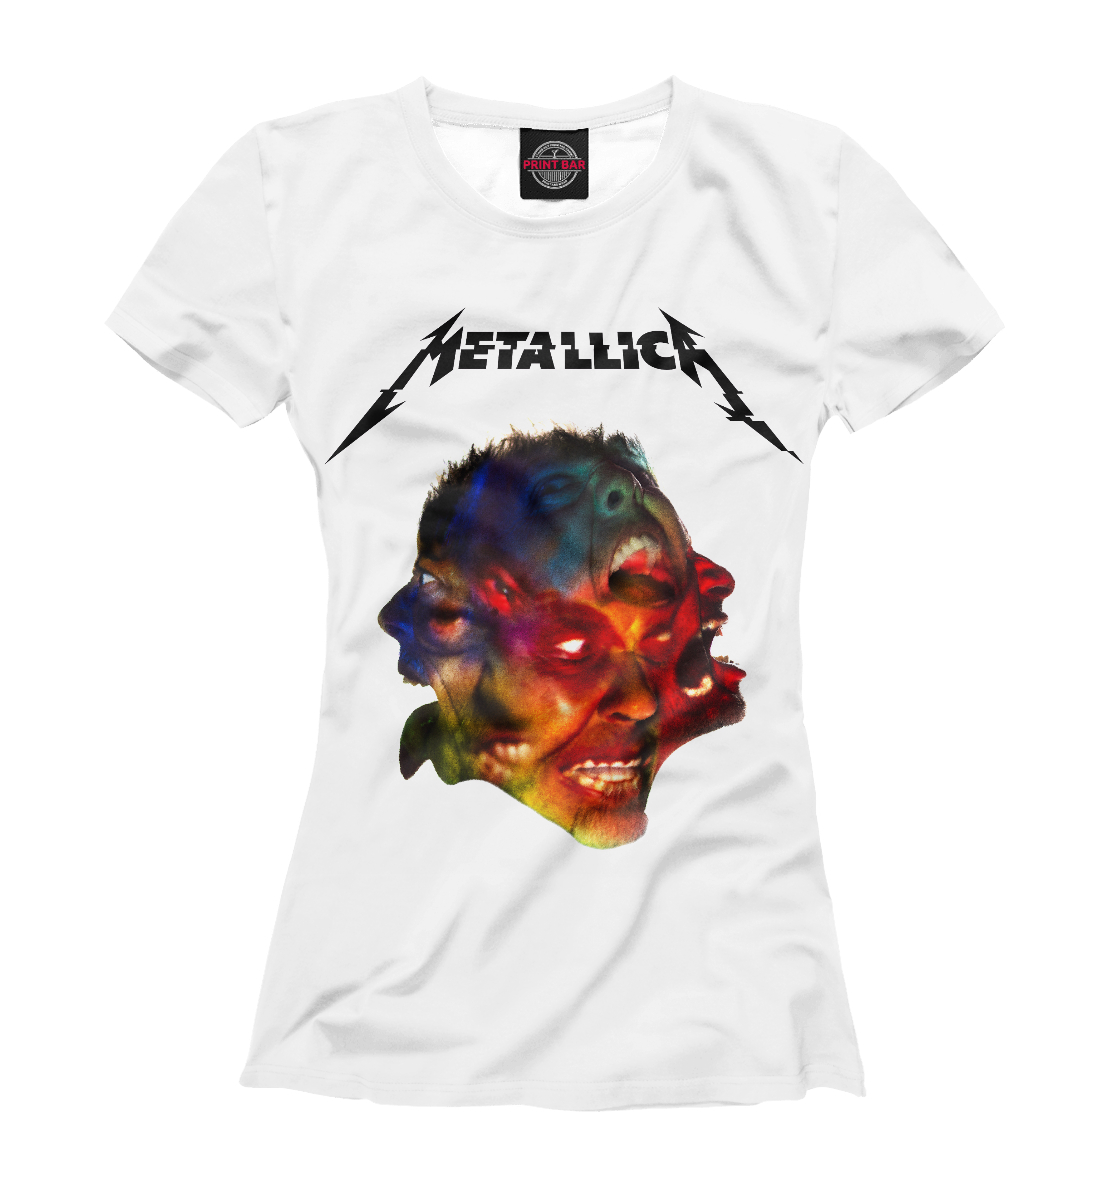 andrew o keeffe hardwired humans Metallica Hardwired